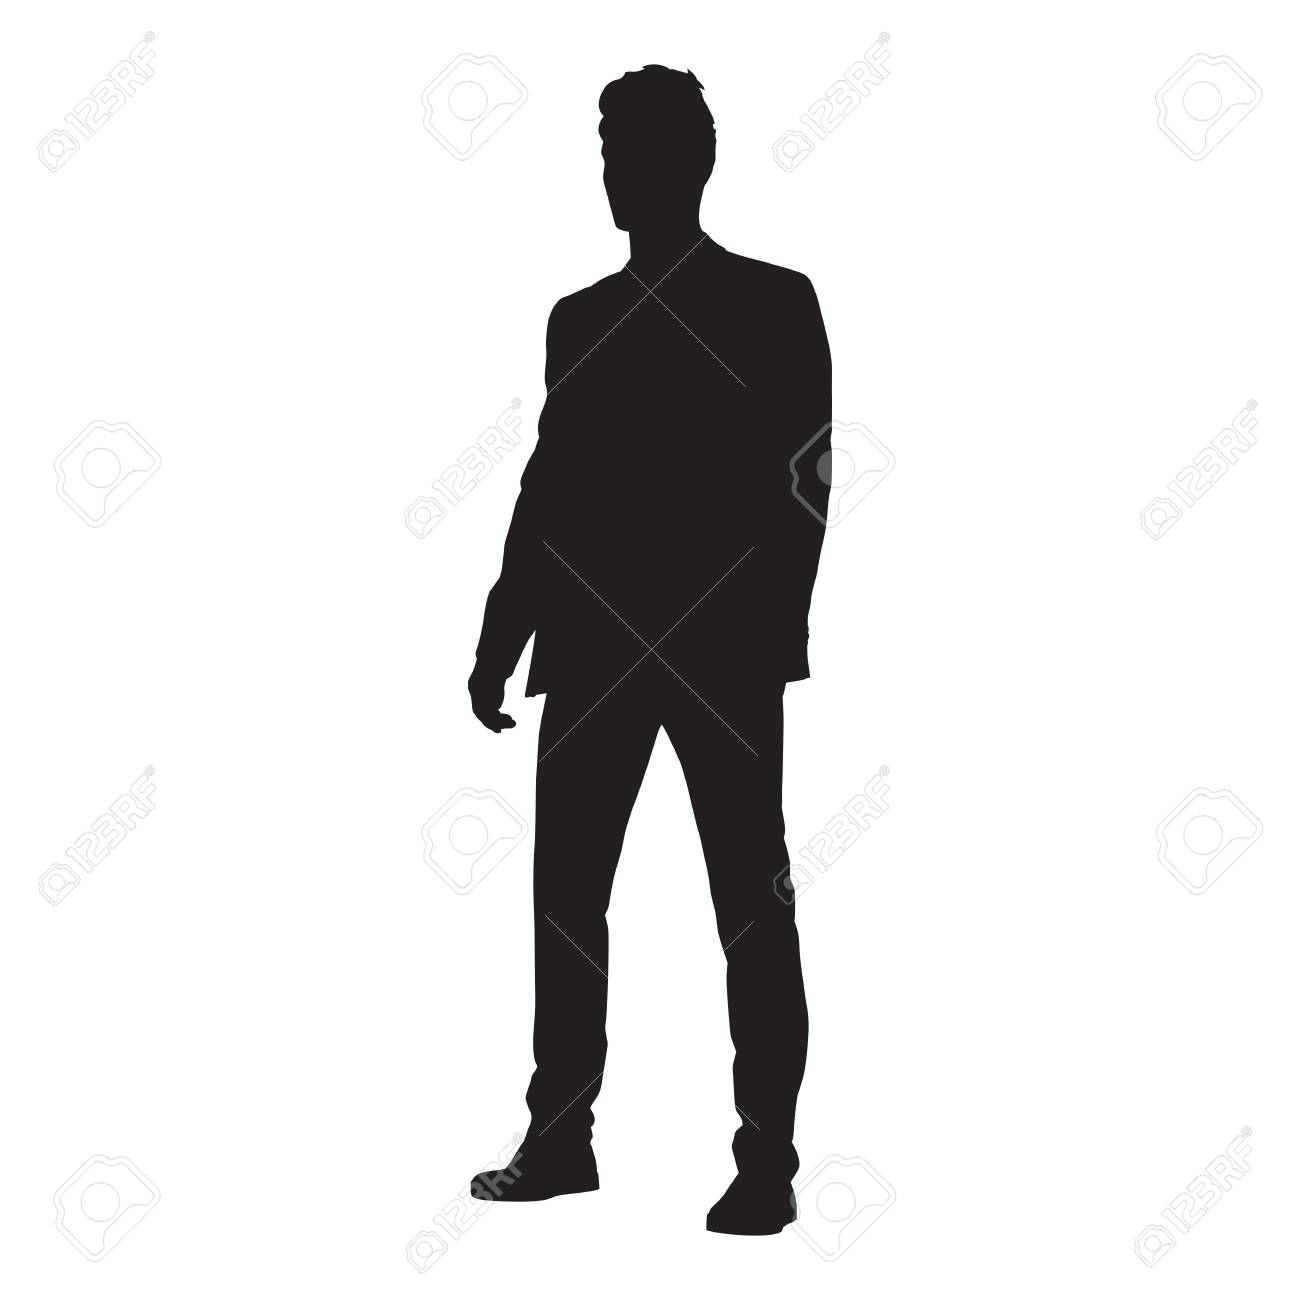 Business Man Silhouette Standing Royalty Free Cliparts Vectors And Stock Illustration Image 96757115 High quality man silhouette gifts and merchandise. business man silhouette standing